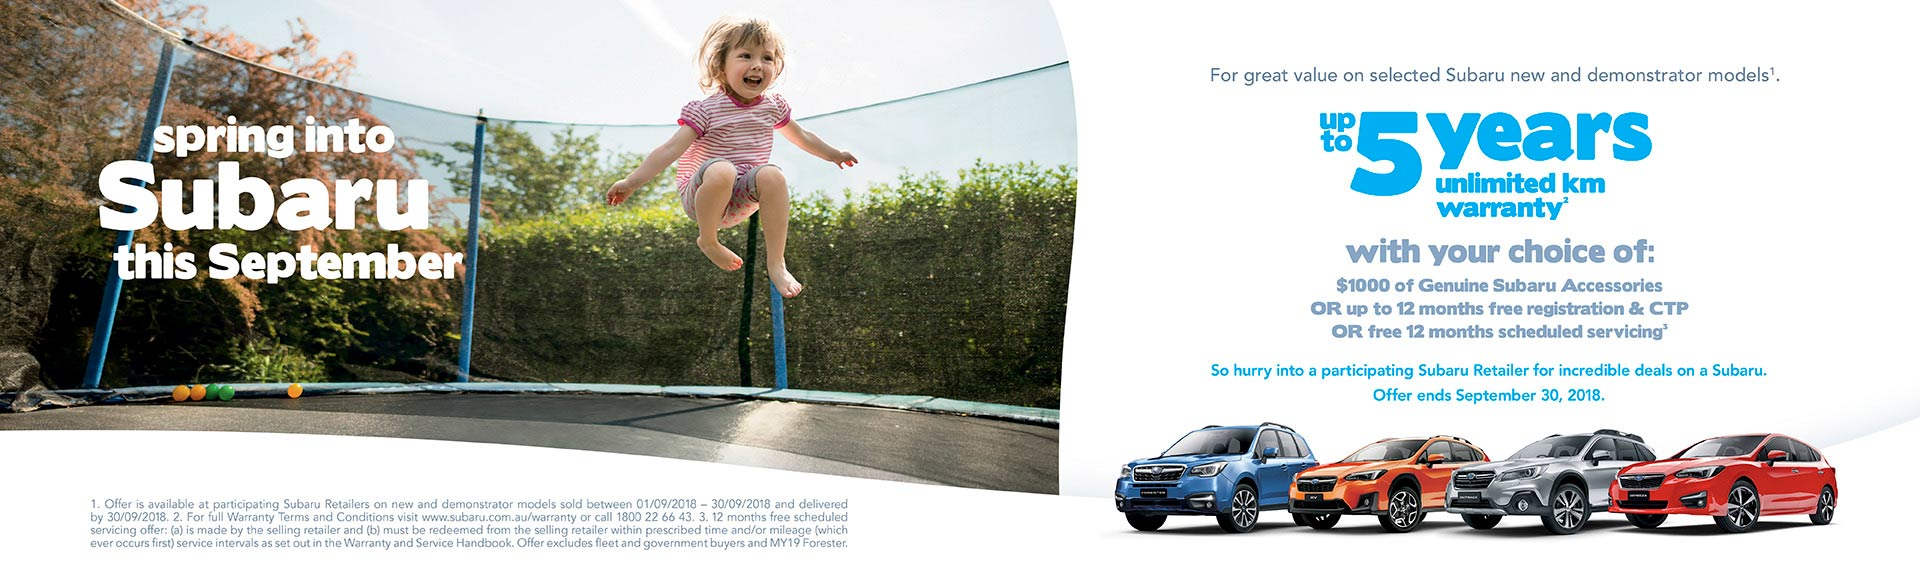 Subaru Latest Offers